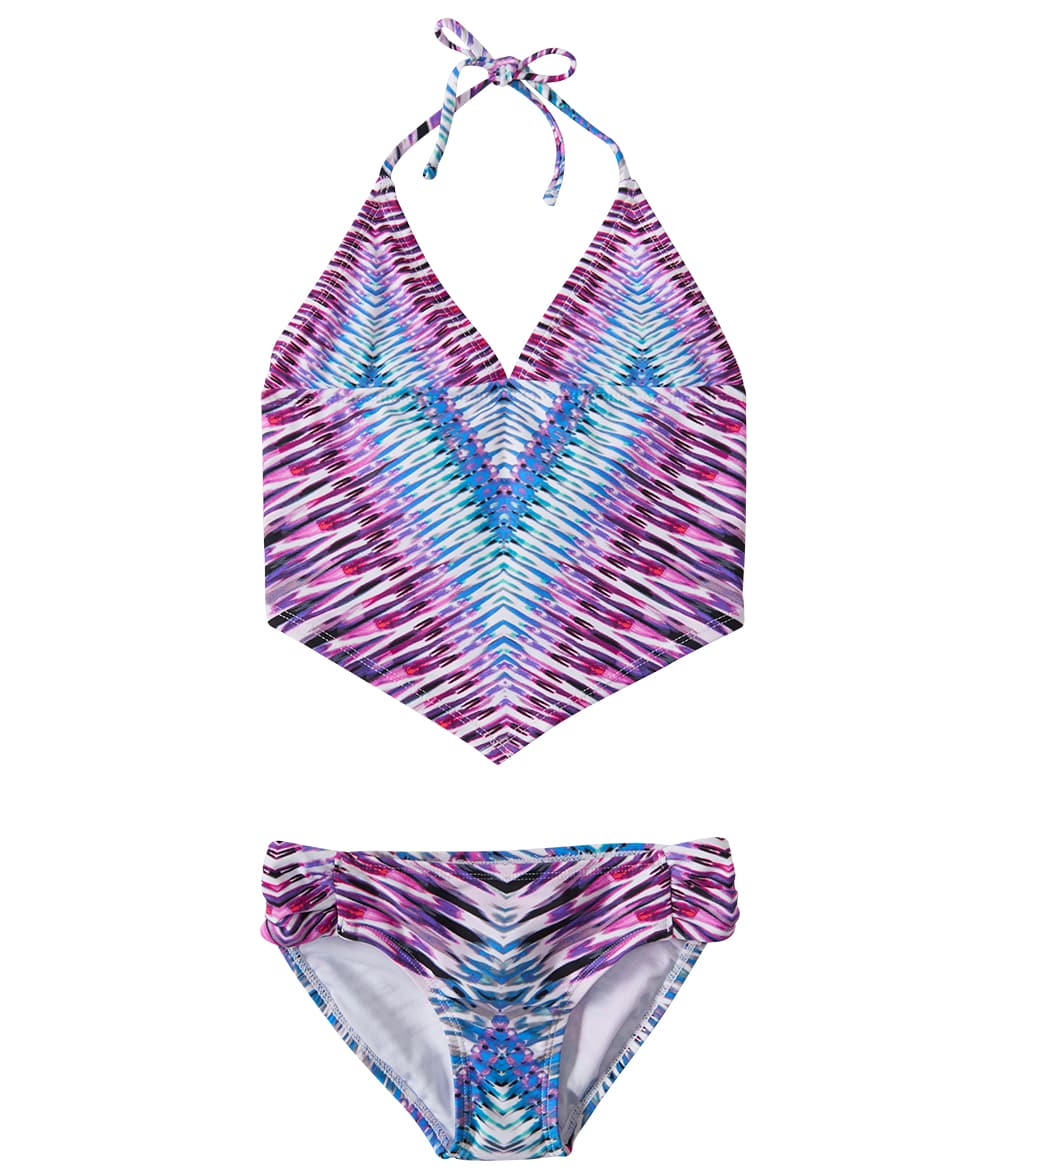 5eaea095b8 Raisins Girls  Stolen Heart Crazy In California Bikini Set (4-6X) at  SwimOutlet.com